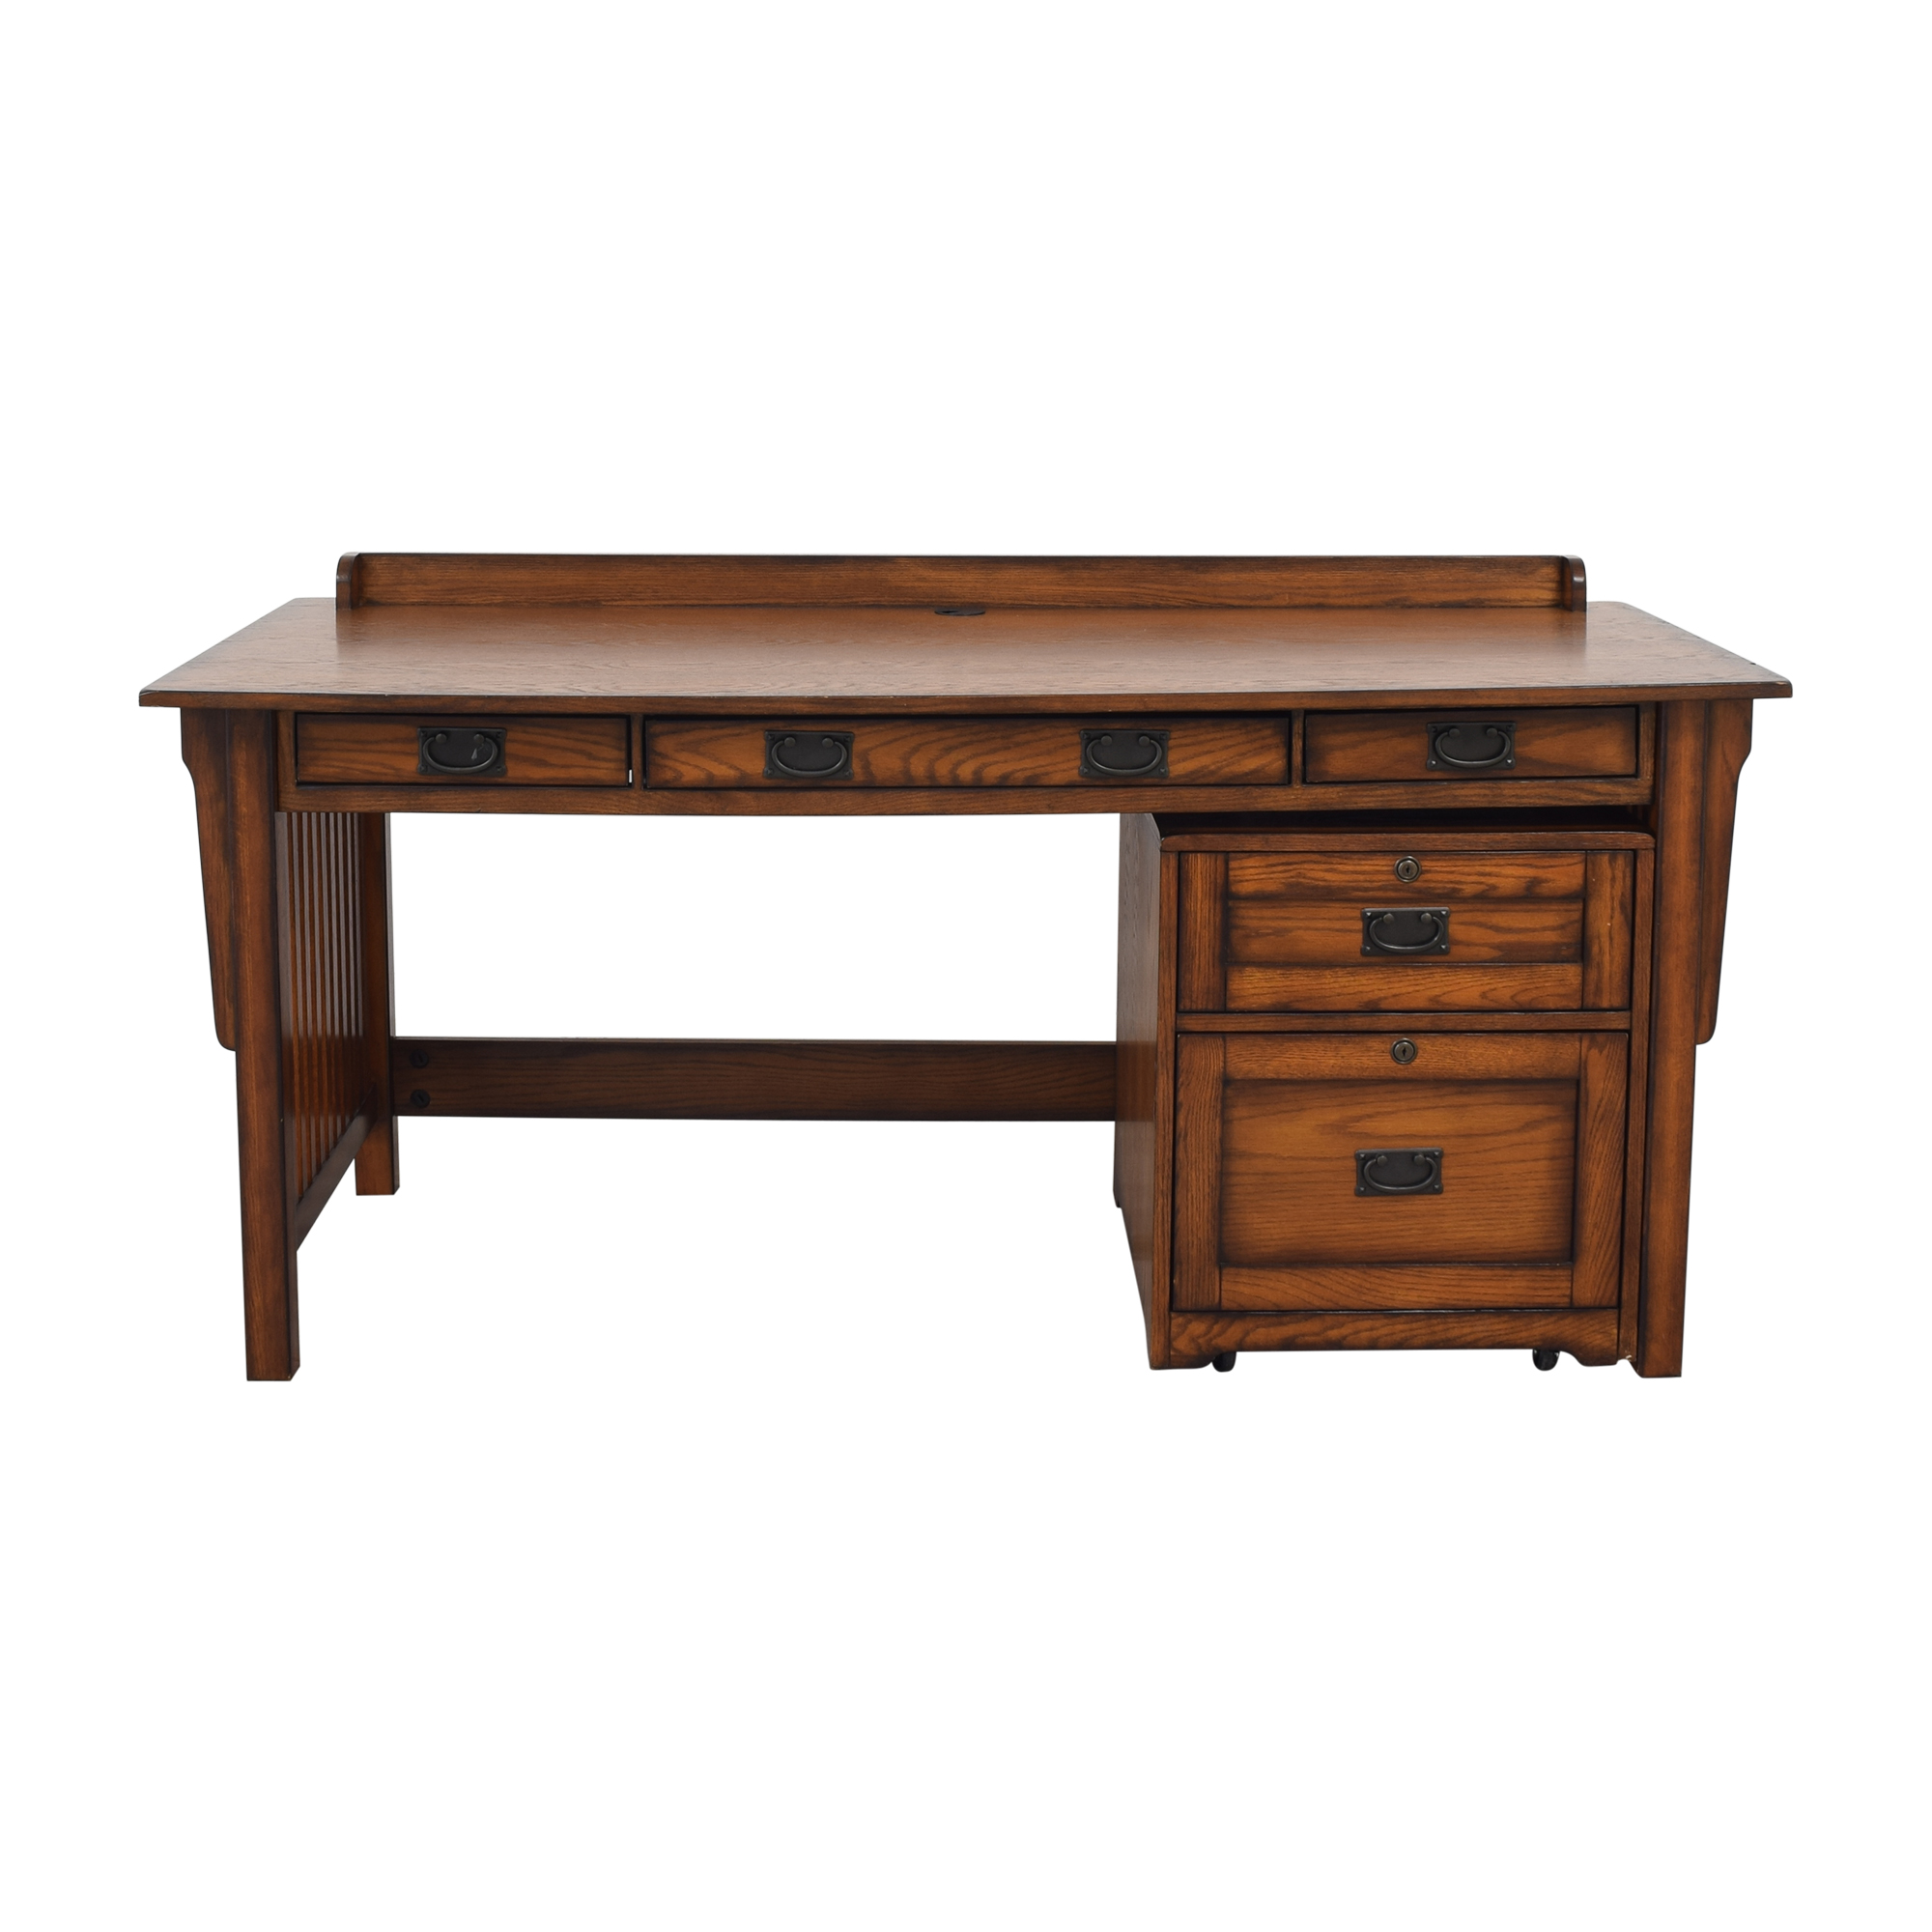 shop Hammary Furniture Hammary Furniture Sedona Desk and File Cabinet online